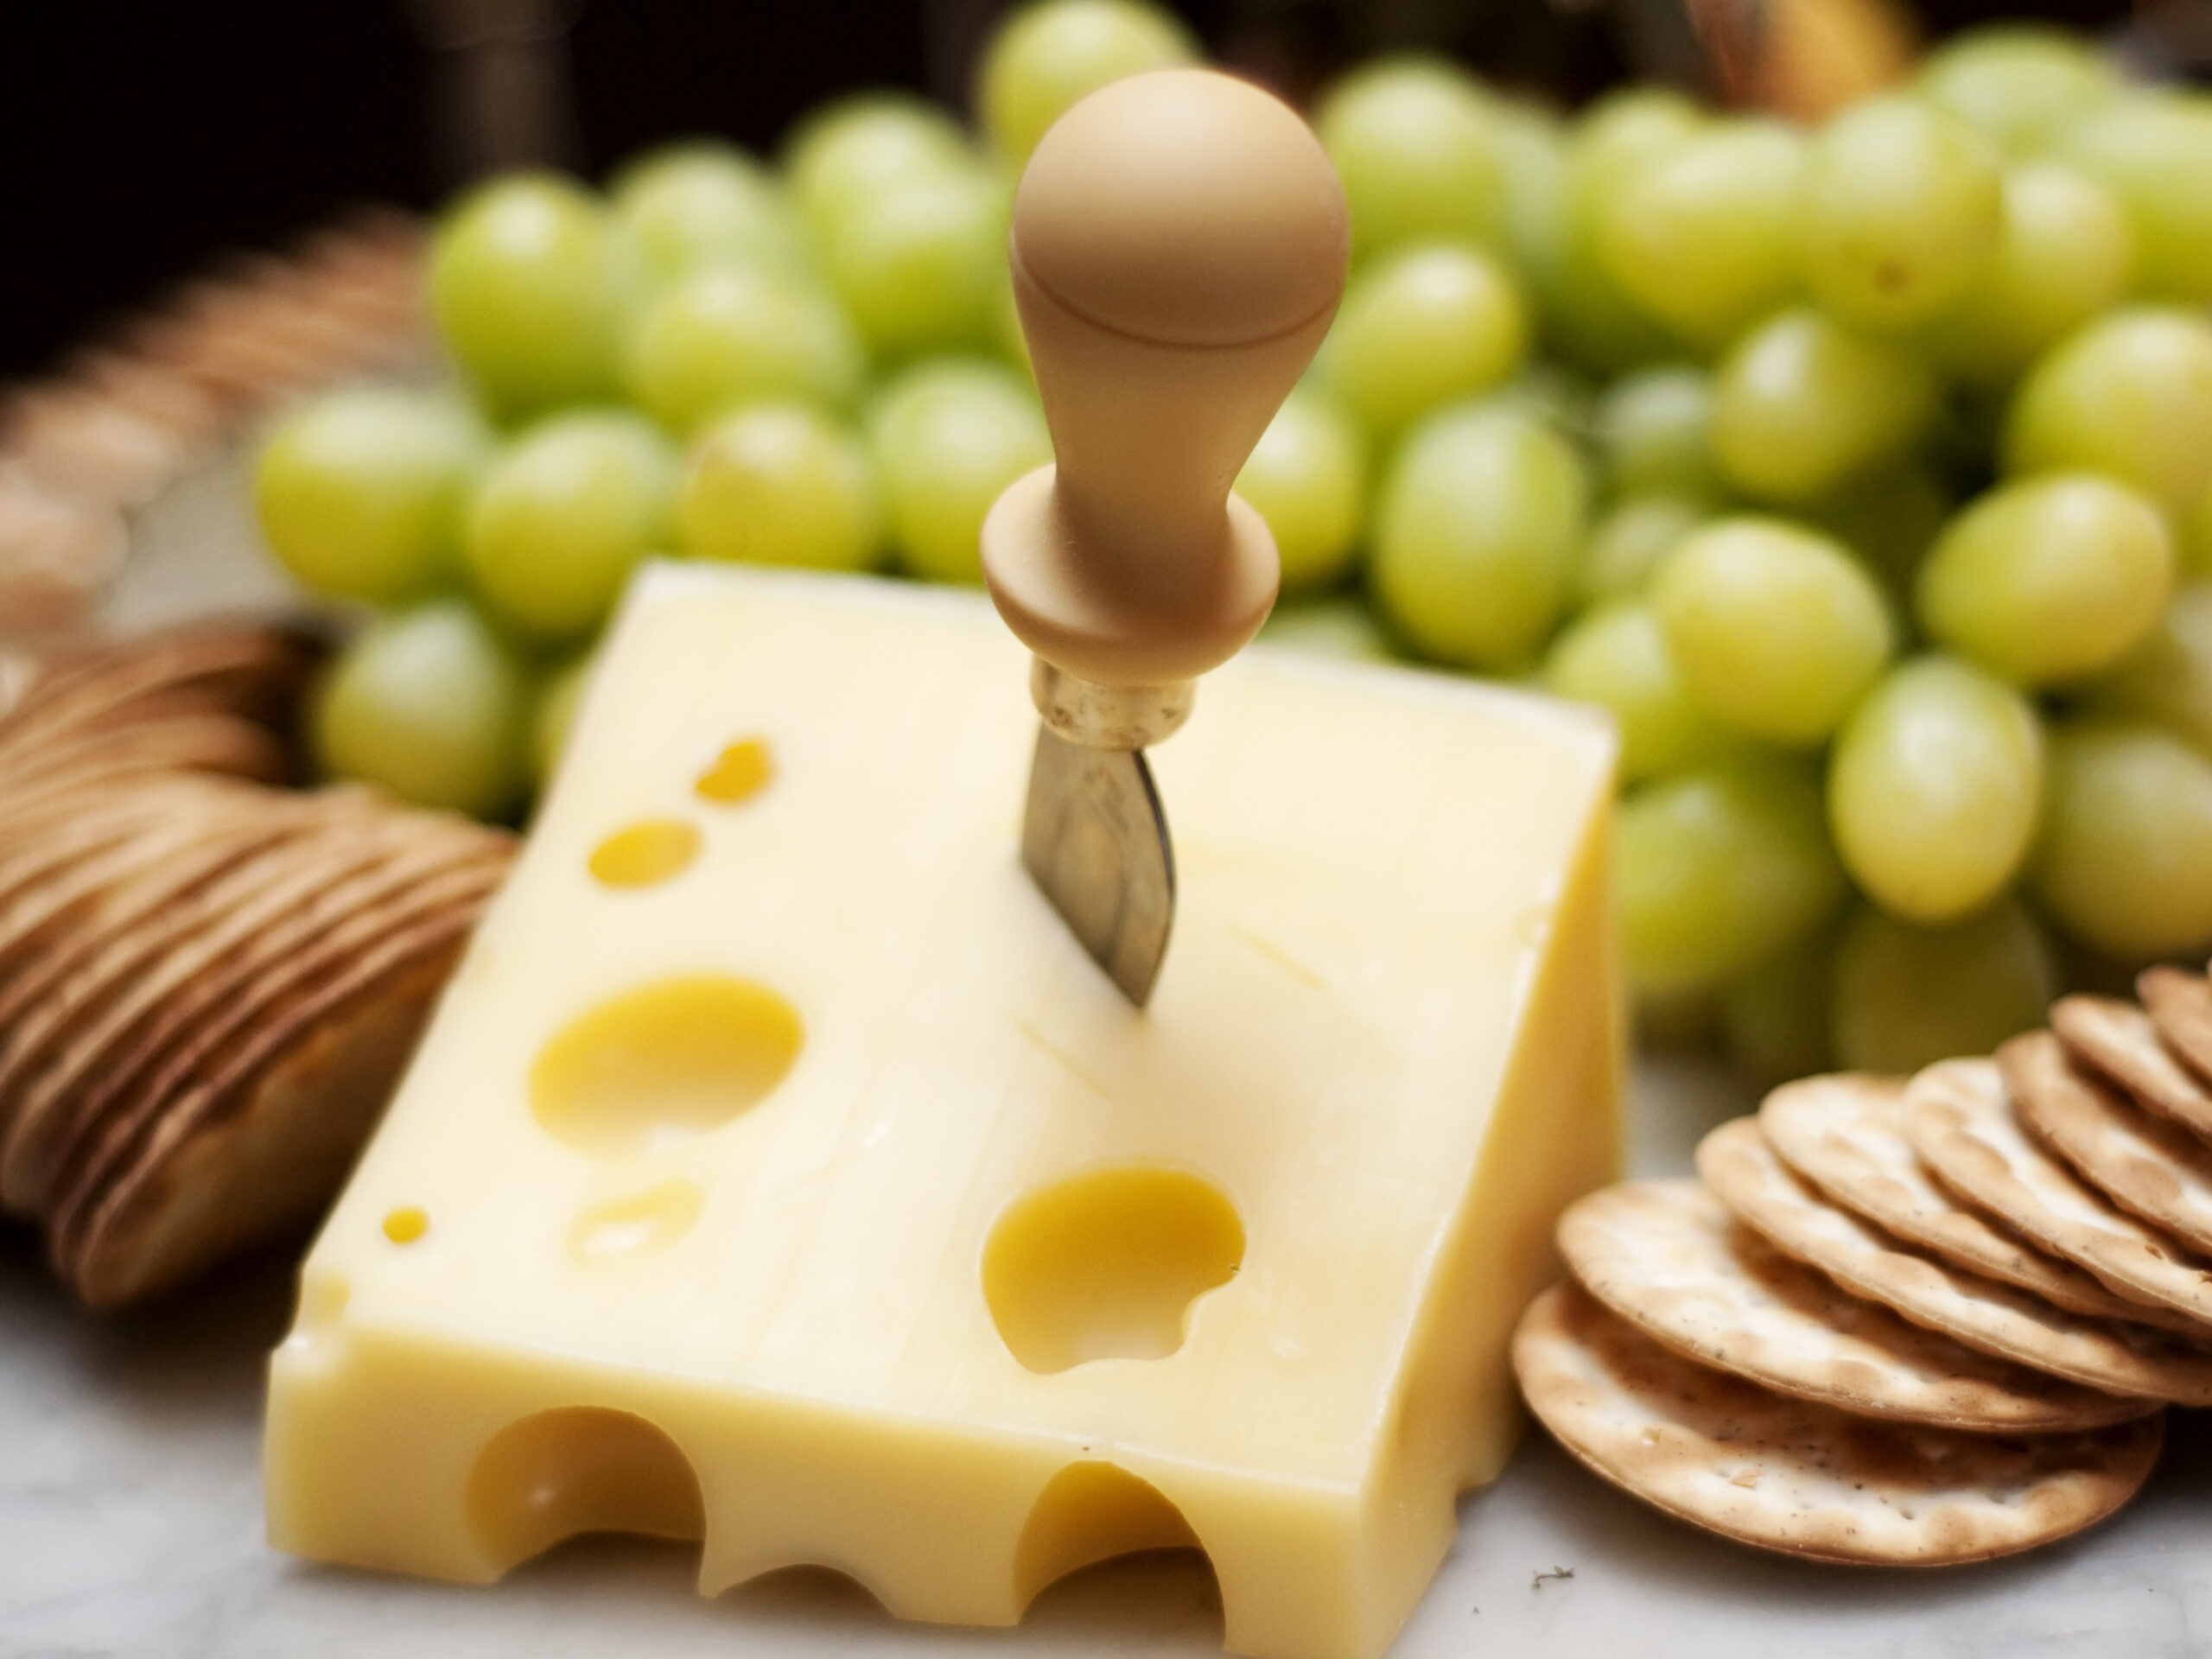 Cheese, crackers and green grapes spread on platter.